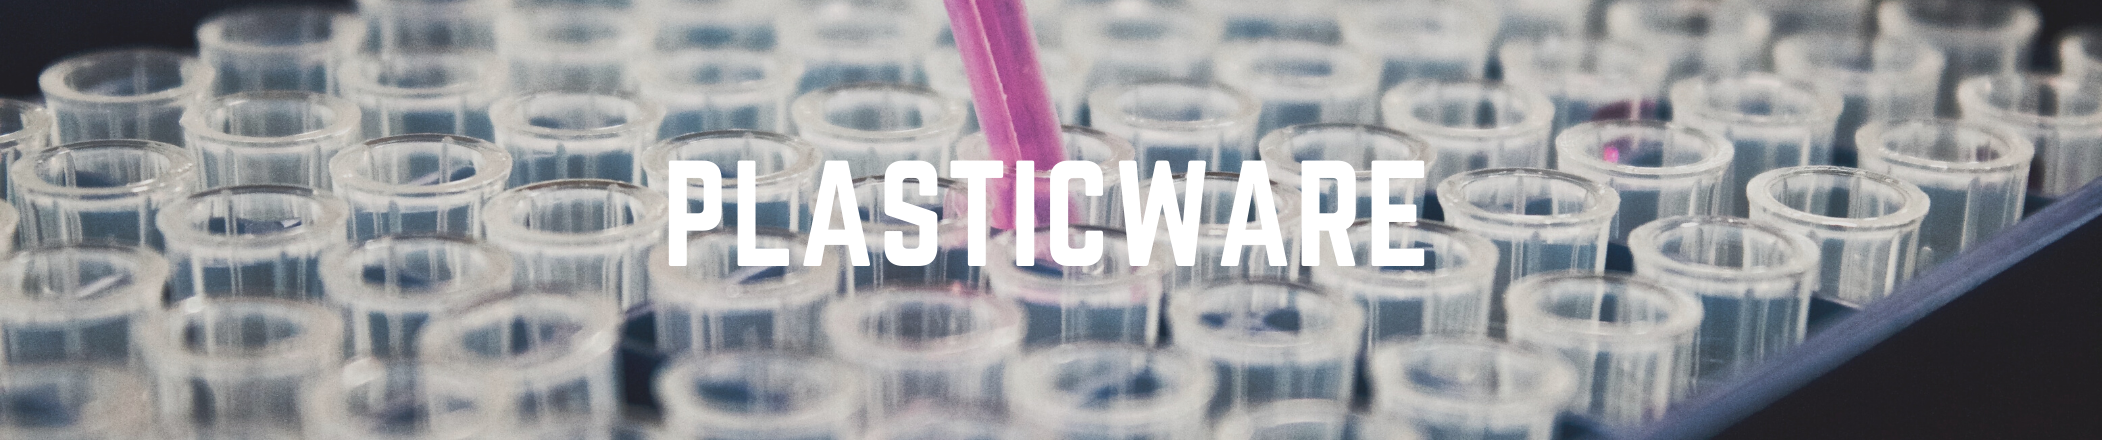 Plasticware text on image background